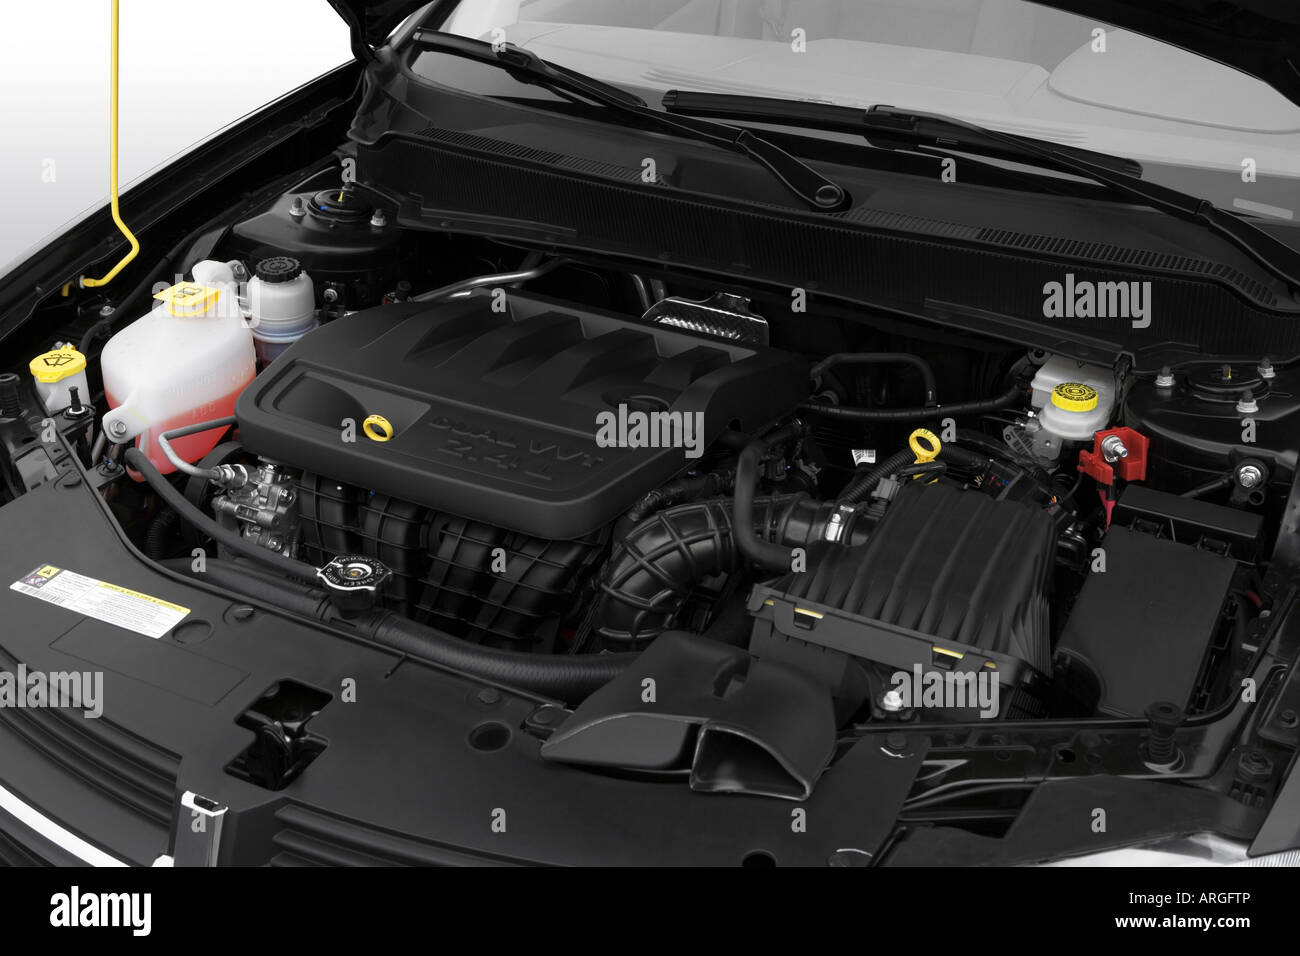 2008 Dodge Avenger Sxt In Black Engine Stock Photo Alamy